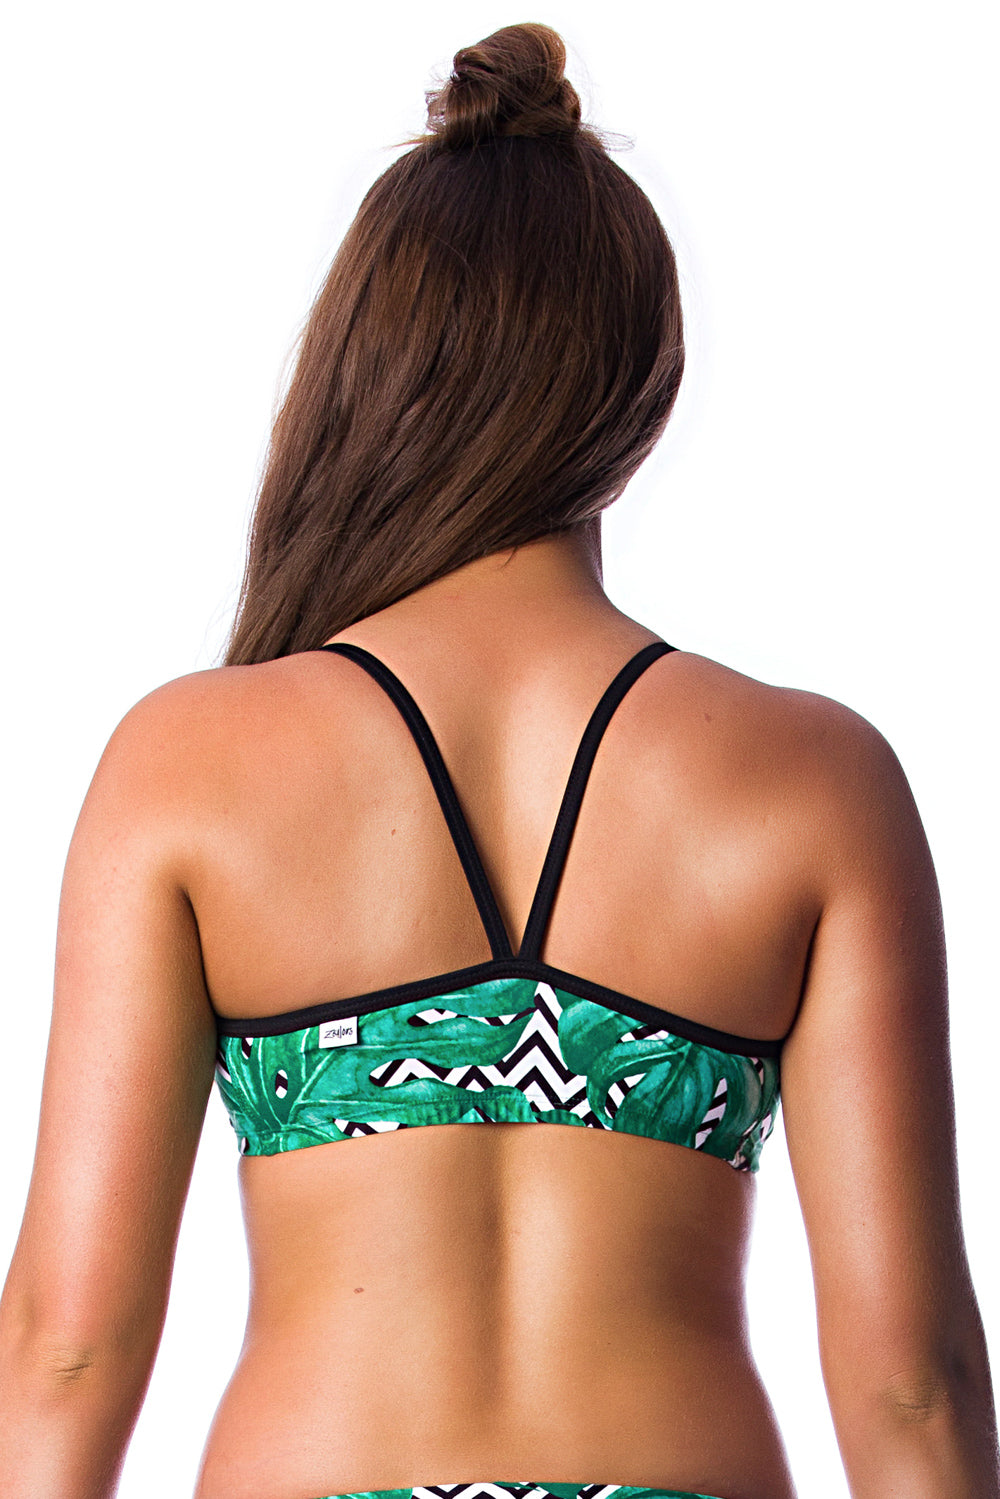 Palm Beach Top Ladies Two Piece - Tops - Shop Zealous Training Swimwear